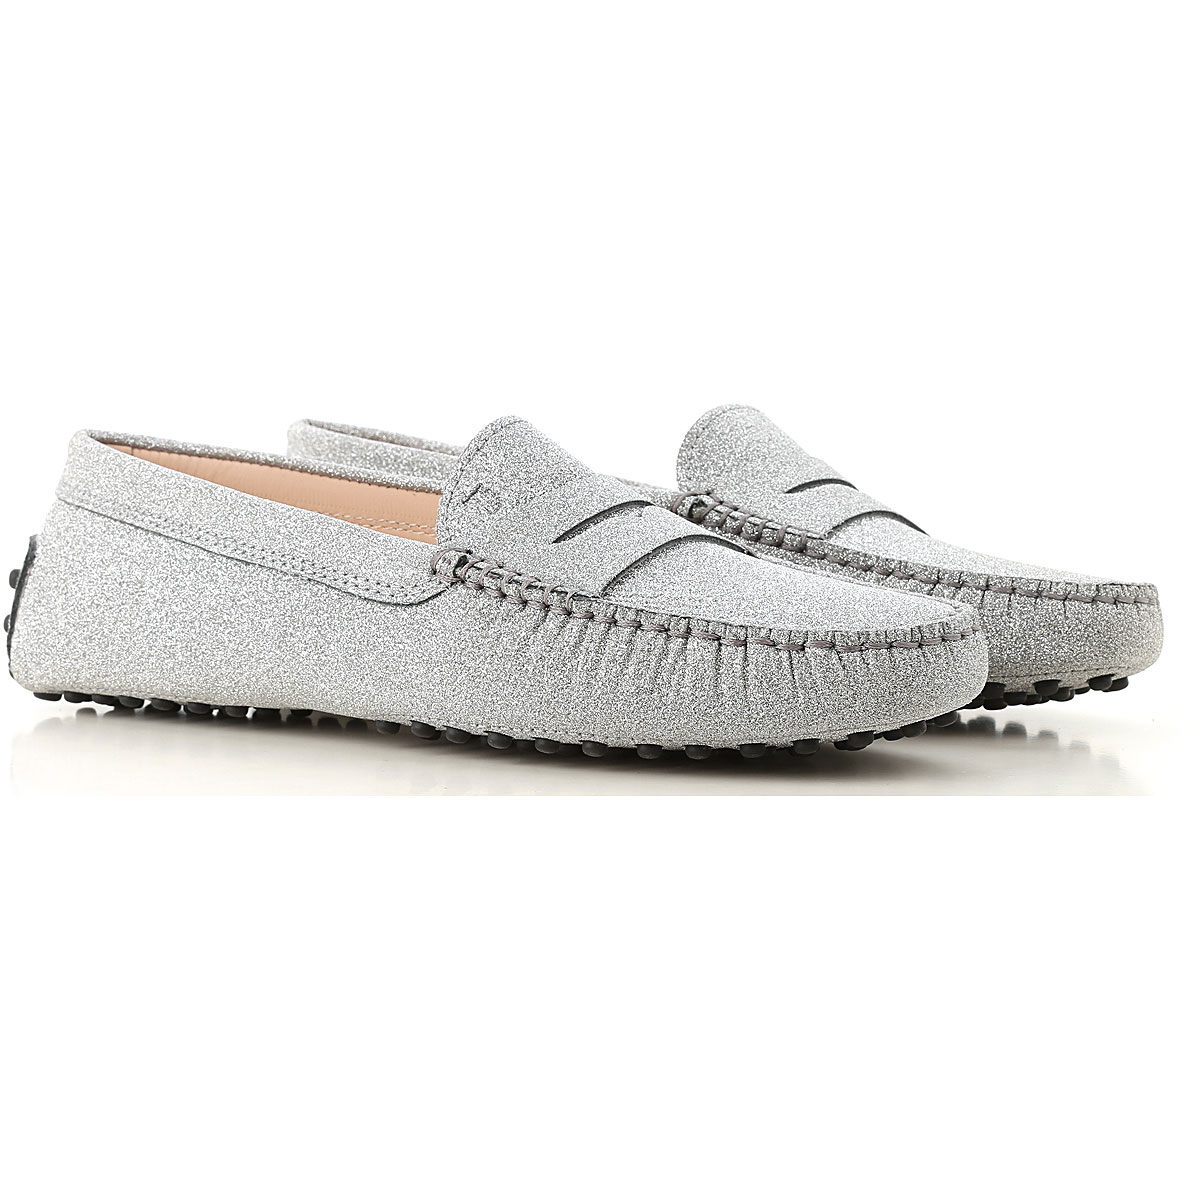 Image of Tods Driver Loafer Shoes for Women, Silver, Glitter, 2017, 10 11 5.5 6 6.5 7 8 8.5 9.5